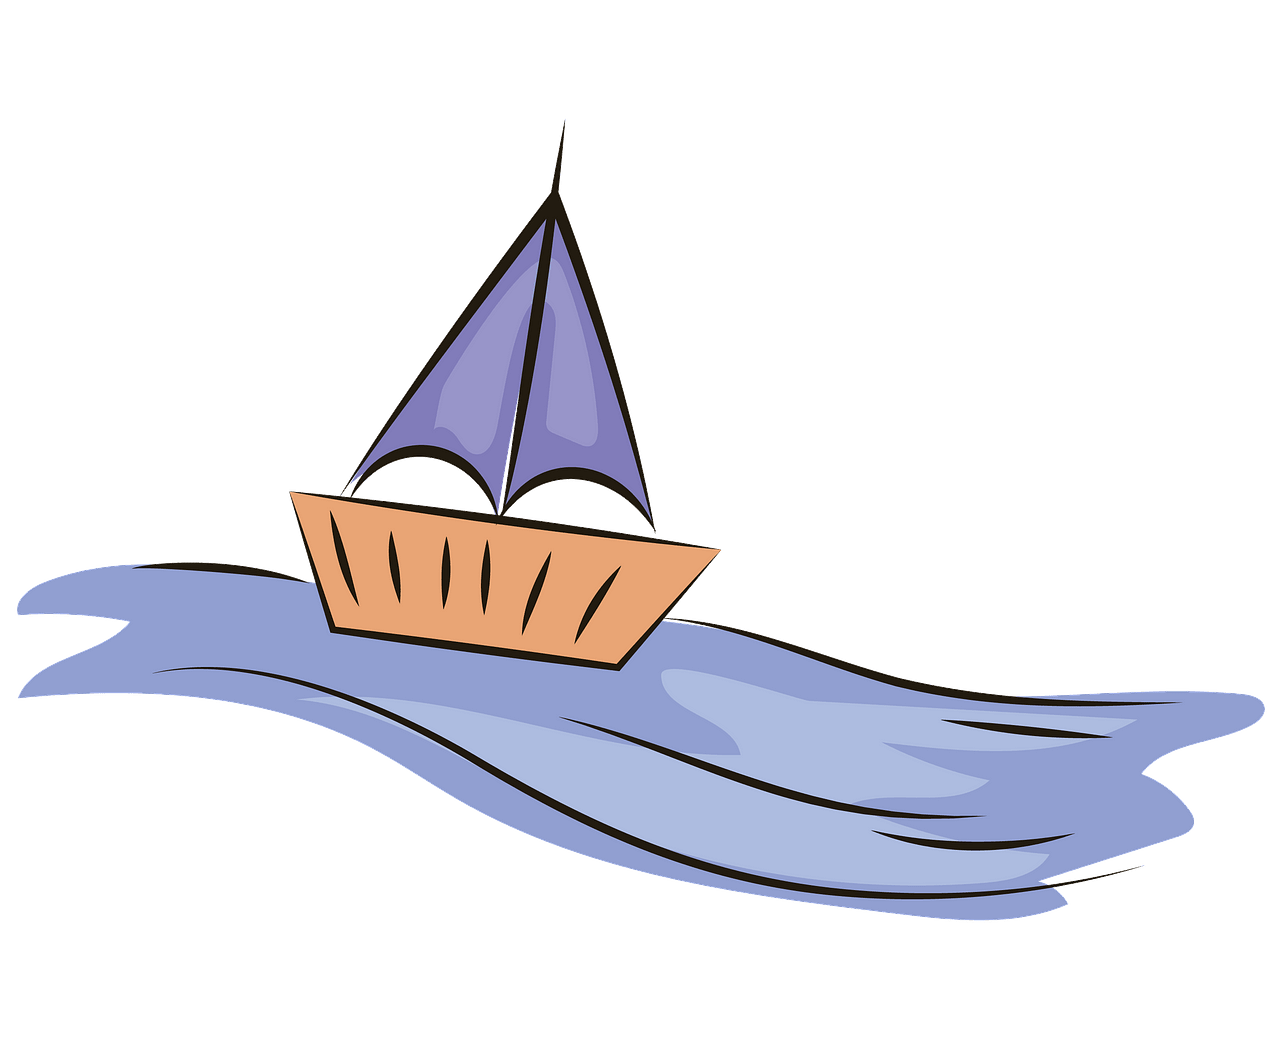 Toy boat on water clipart. Free download..